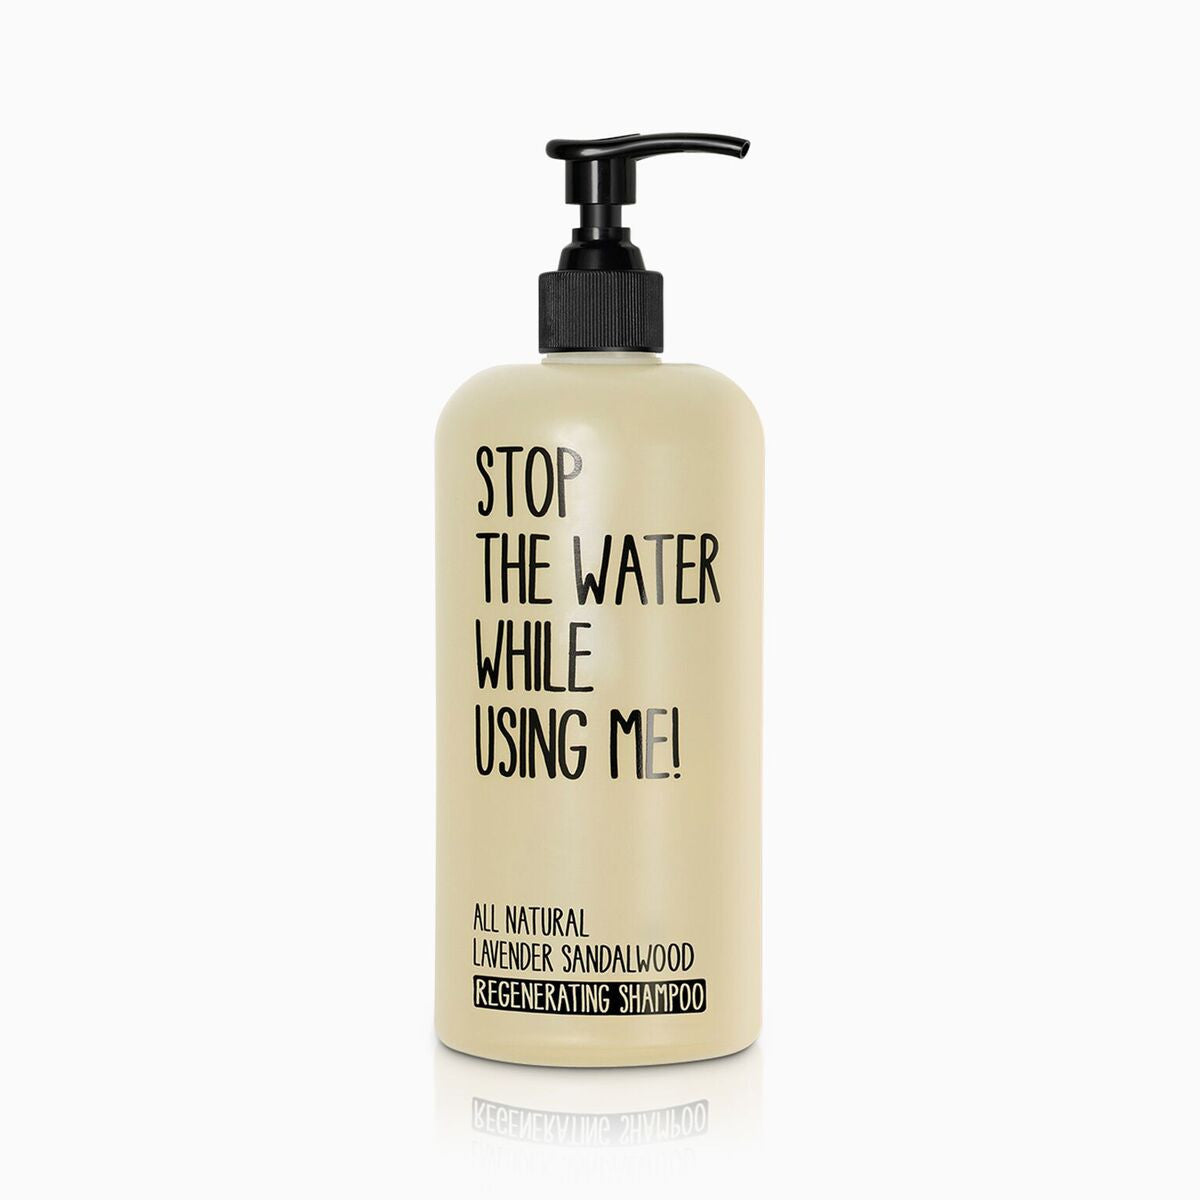 stop the water while using me - shampoo